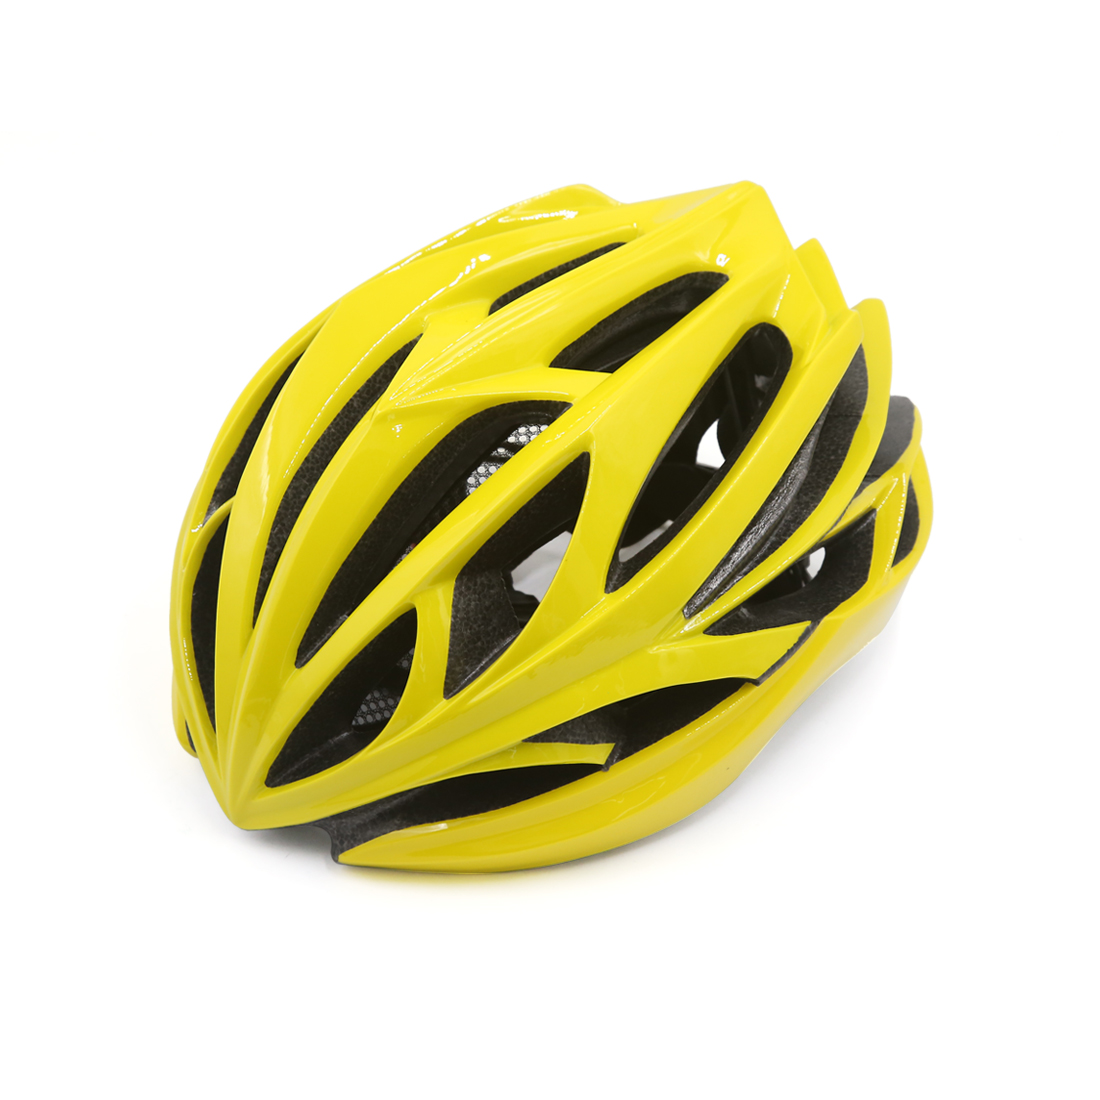 Unisex Adult MTB Mountain Bike Bicycle Cycling Shockproof Safety Helmet Yellow